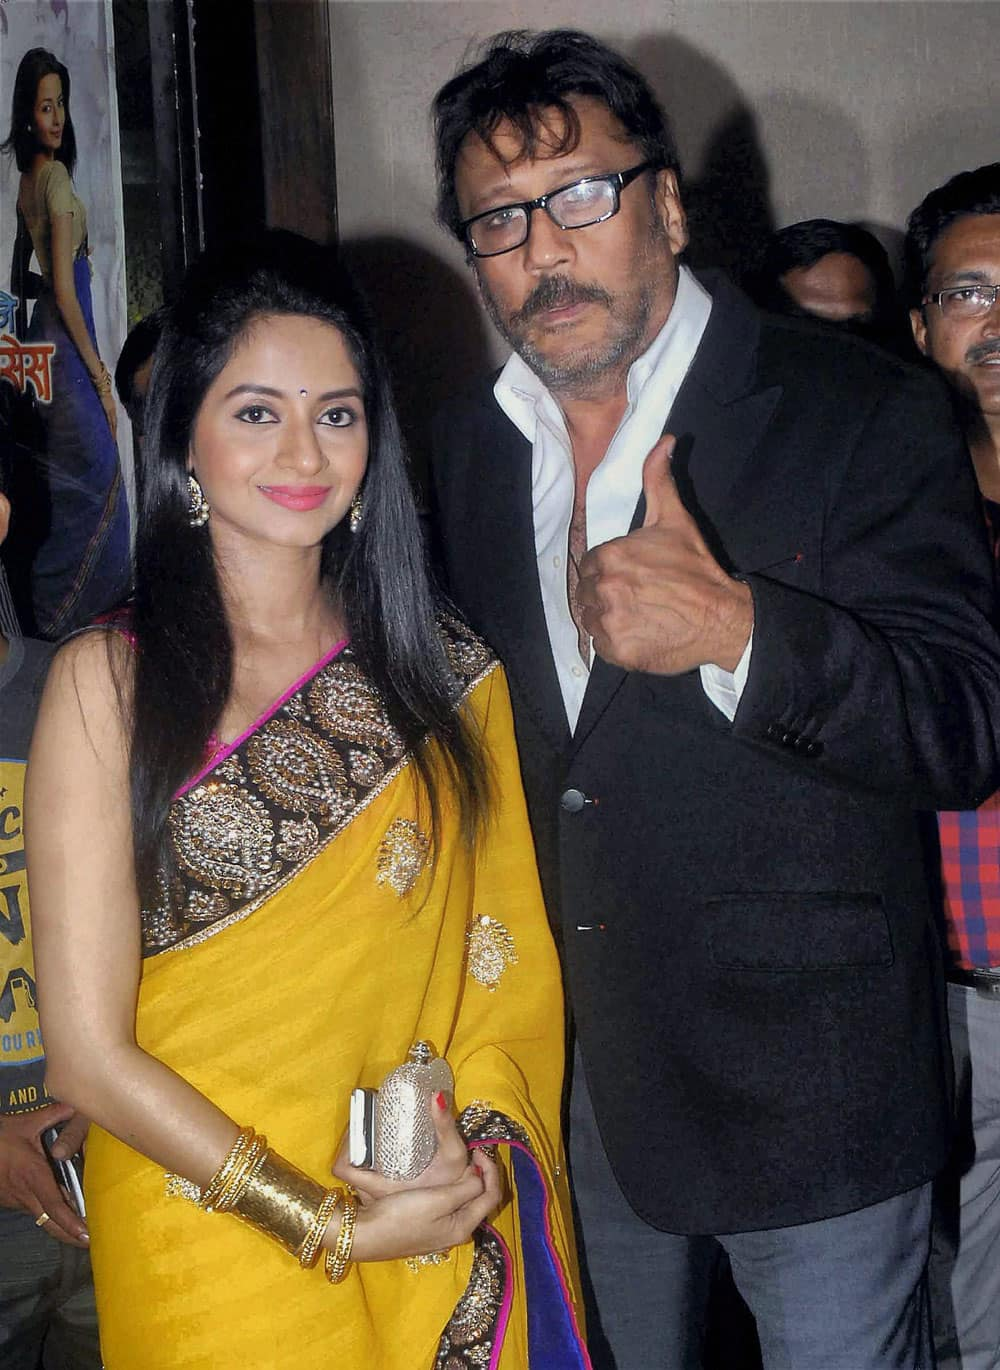 Bollywood actor Jackie Shroff with Marathi actress Amruta Ghuge during promotion of their upcoming Marathi film 'Vishesh Mhanje He Majhi Misses' in Mumbai.